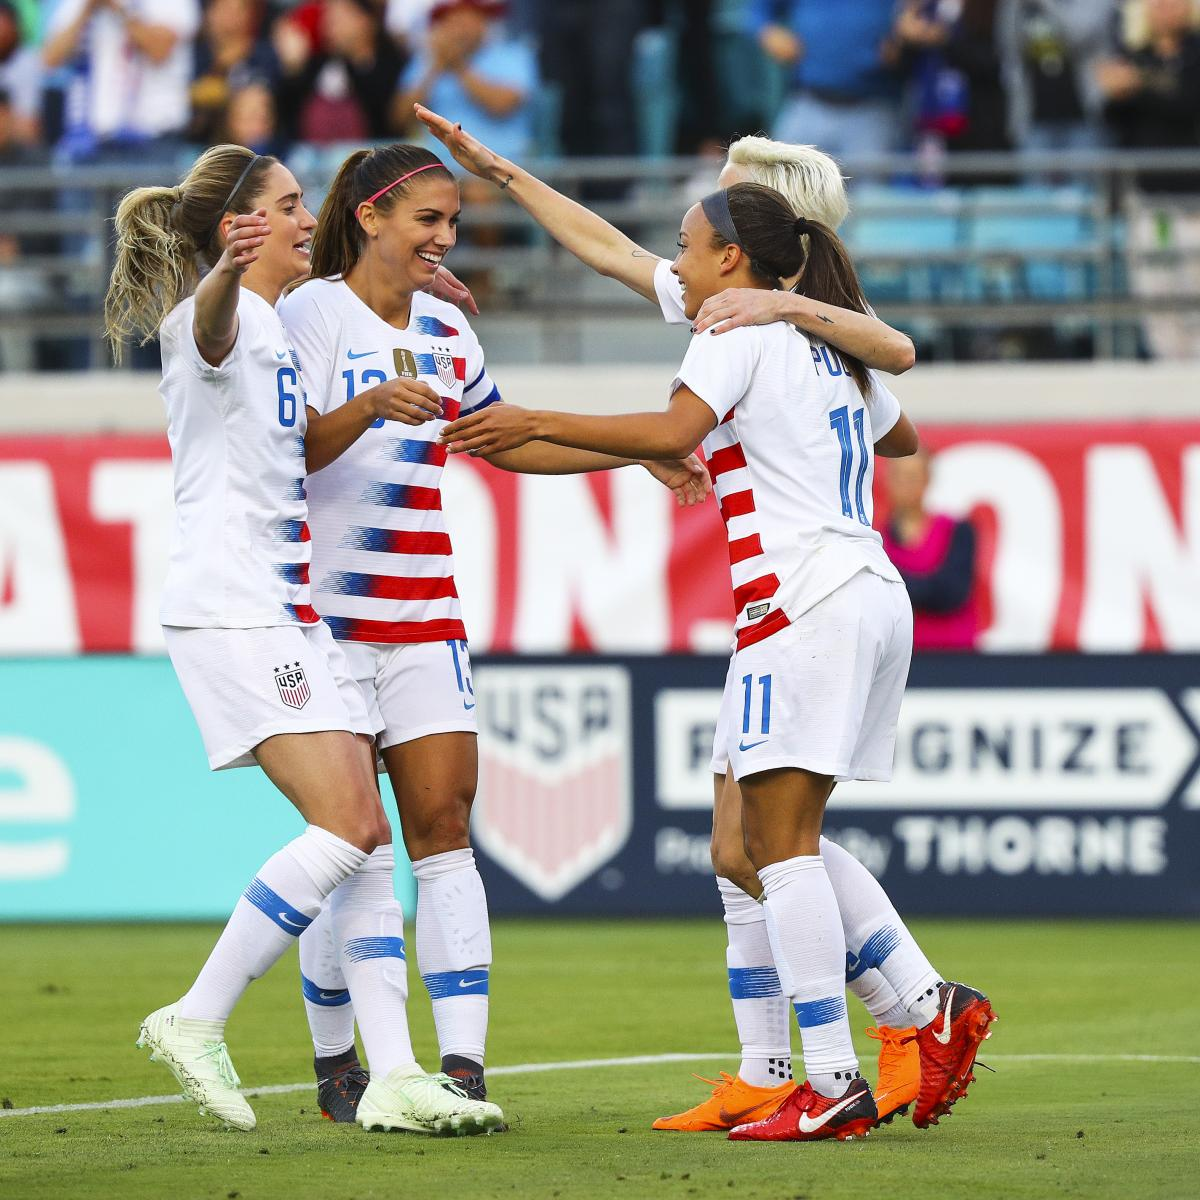 USA Vs. Mexico: Date, Time, Live Stream For 2018 Women's